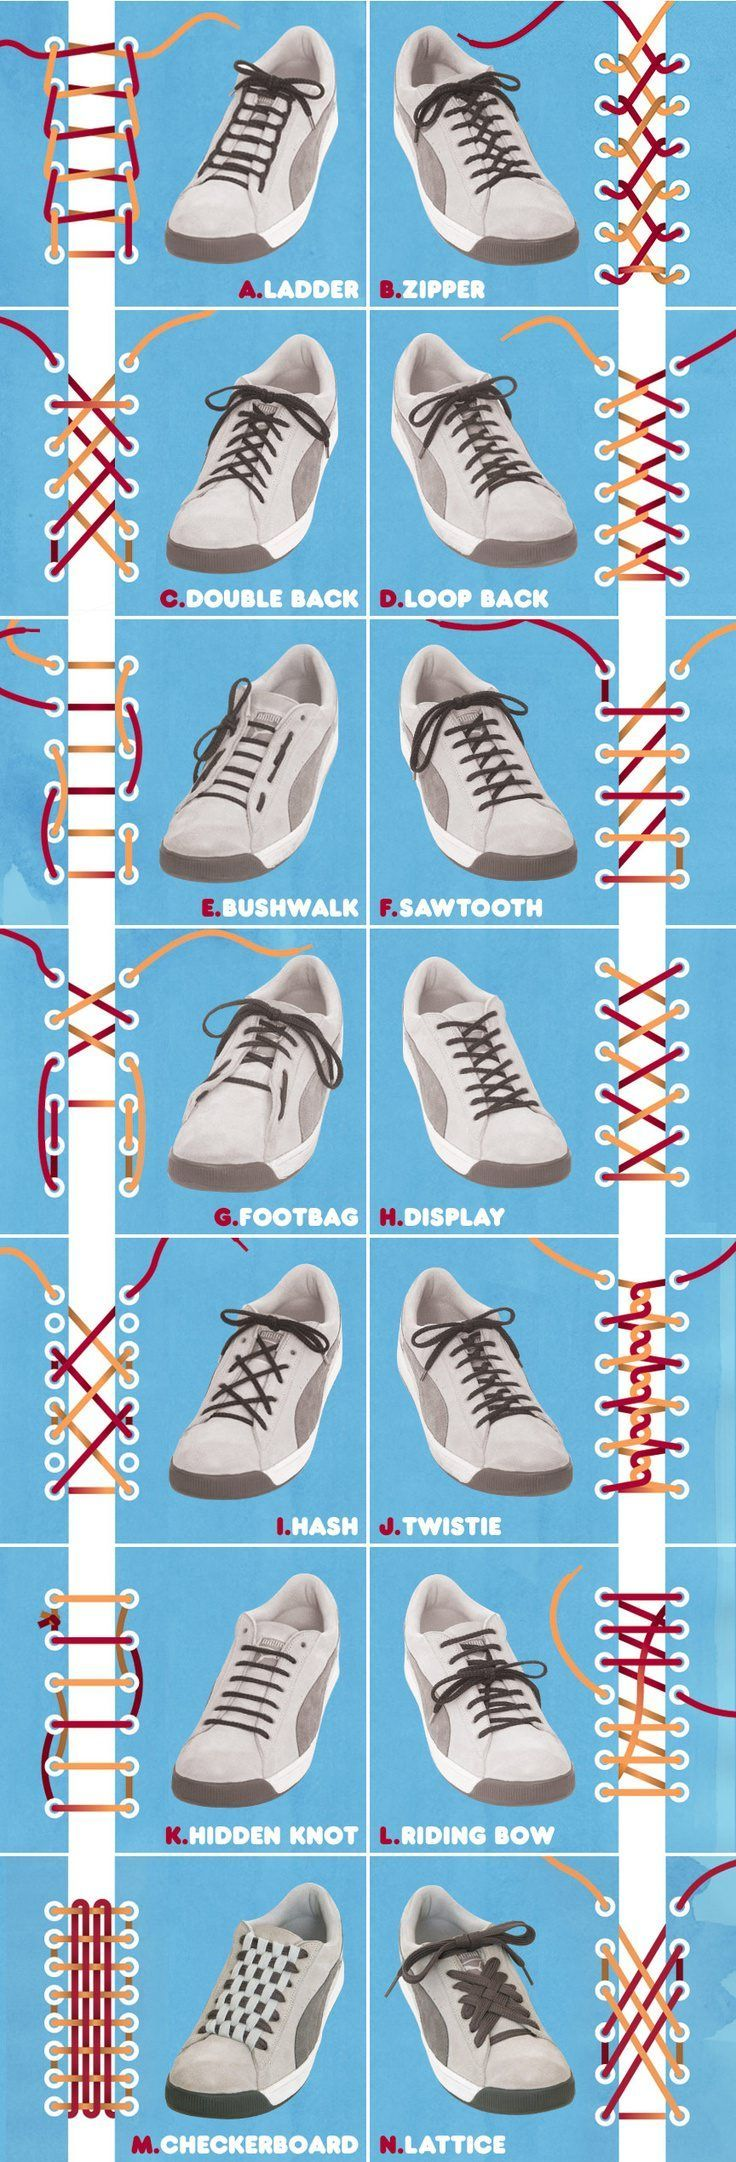 cool ways to tie shoelaces, easy ways to tie shoes #Style #Fashion #Menswear Re-pinned by www.avacationrental4me.com